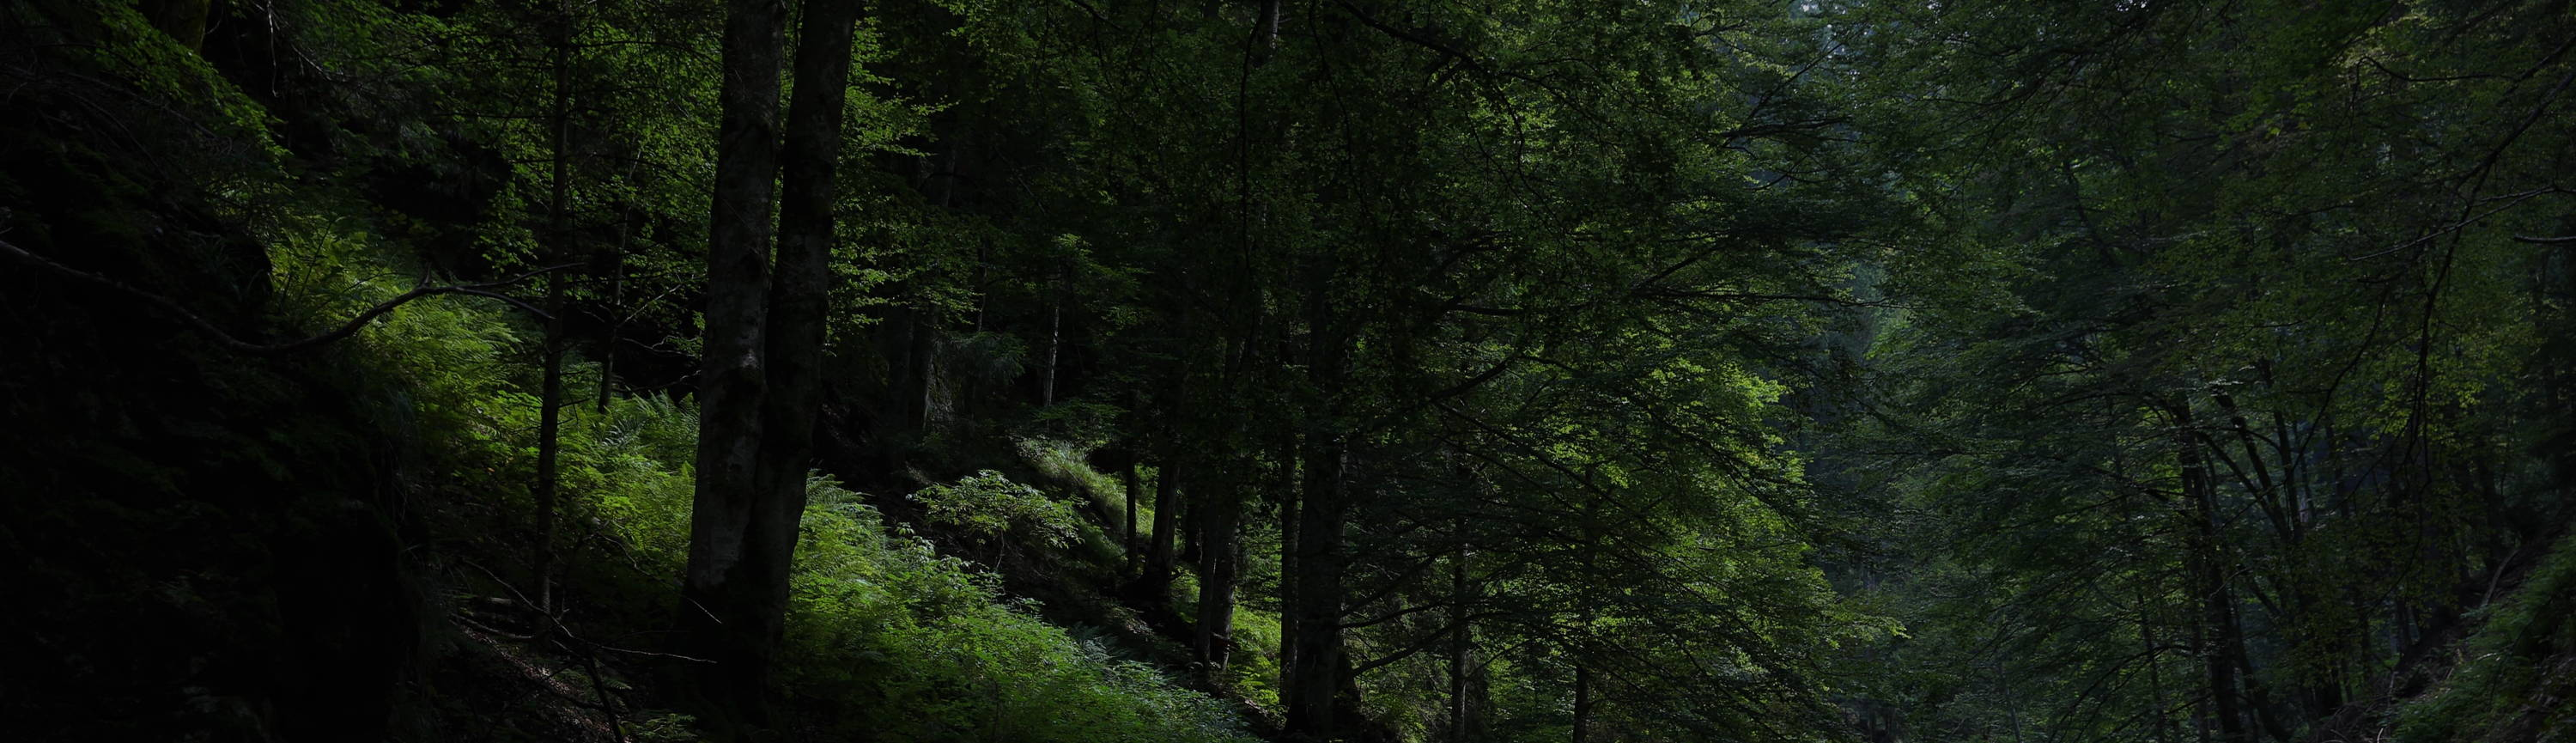 A dense forest in Romania's Southern Carpathians